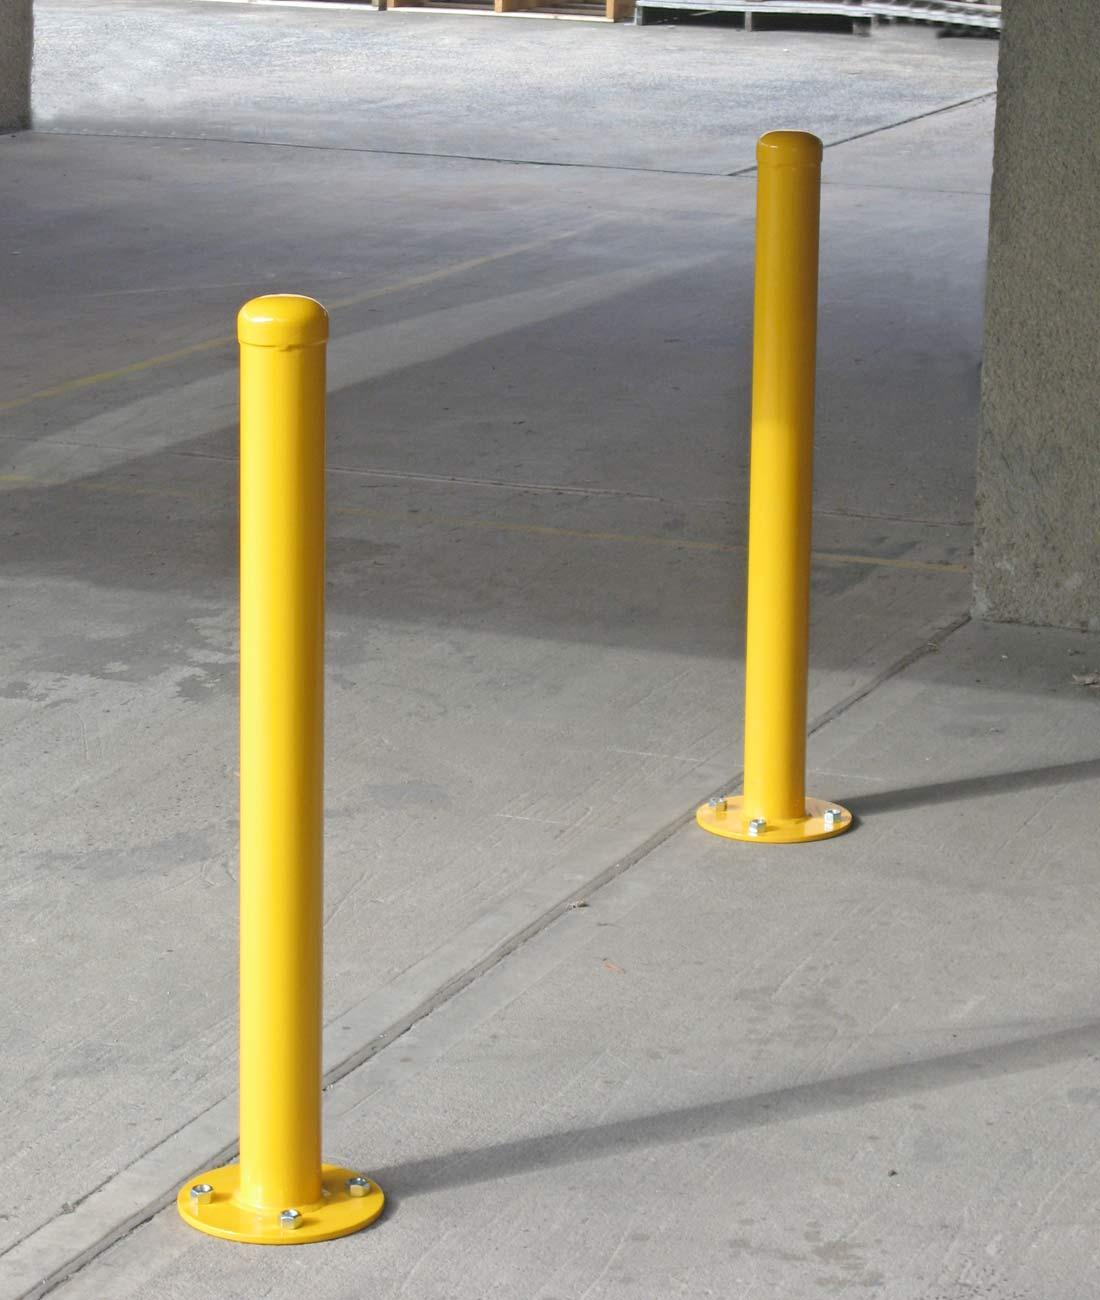 B090 Safety Bollard 90mm Dia Furniture For Public Spaces